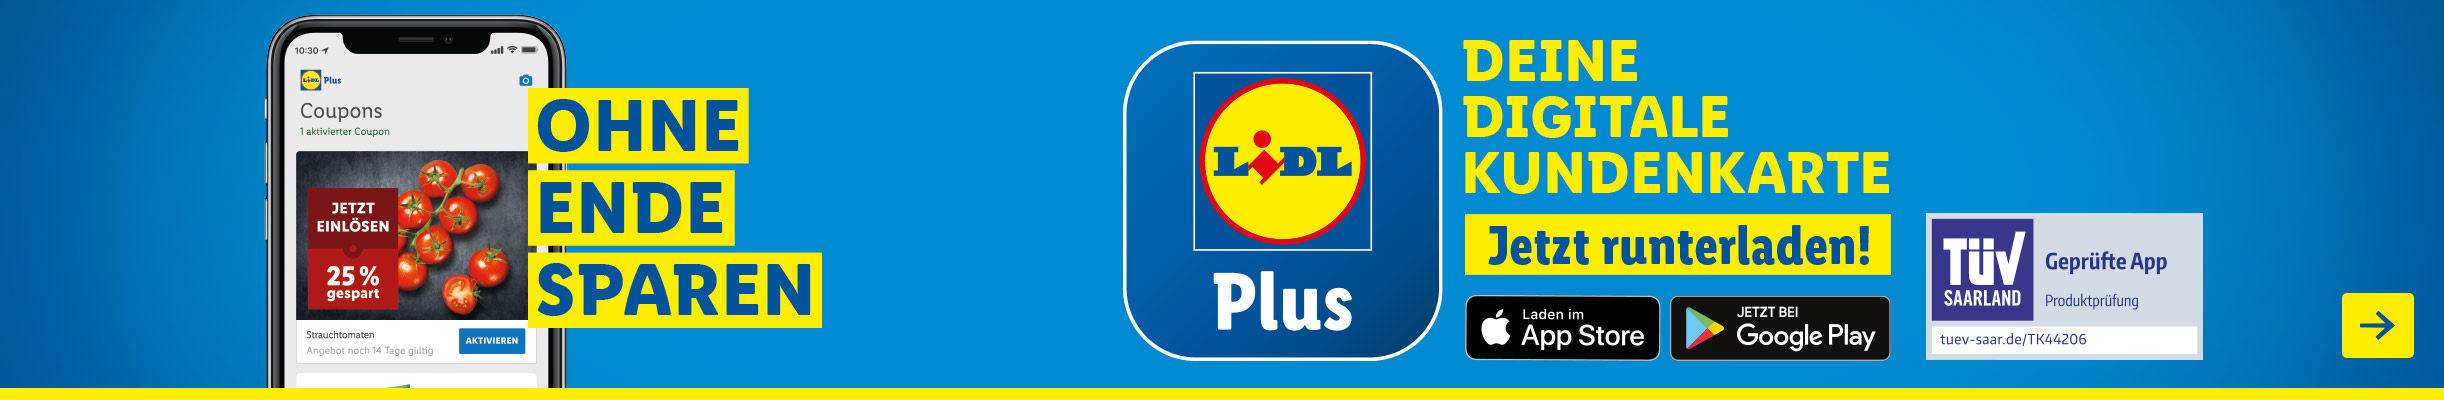 Lidl Plus - Deine digitale Kundenkarte